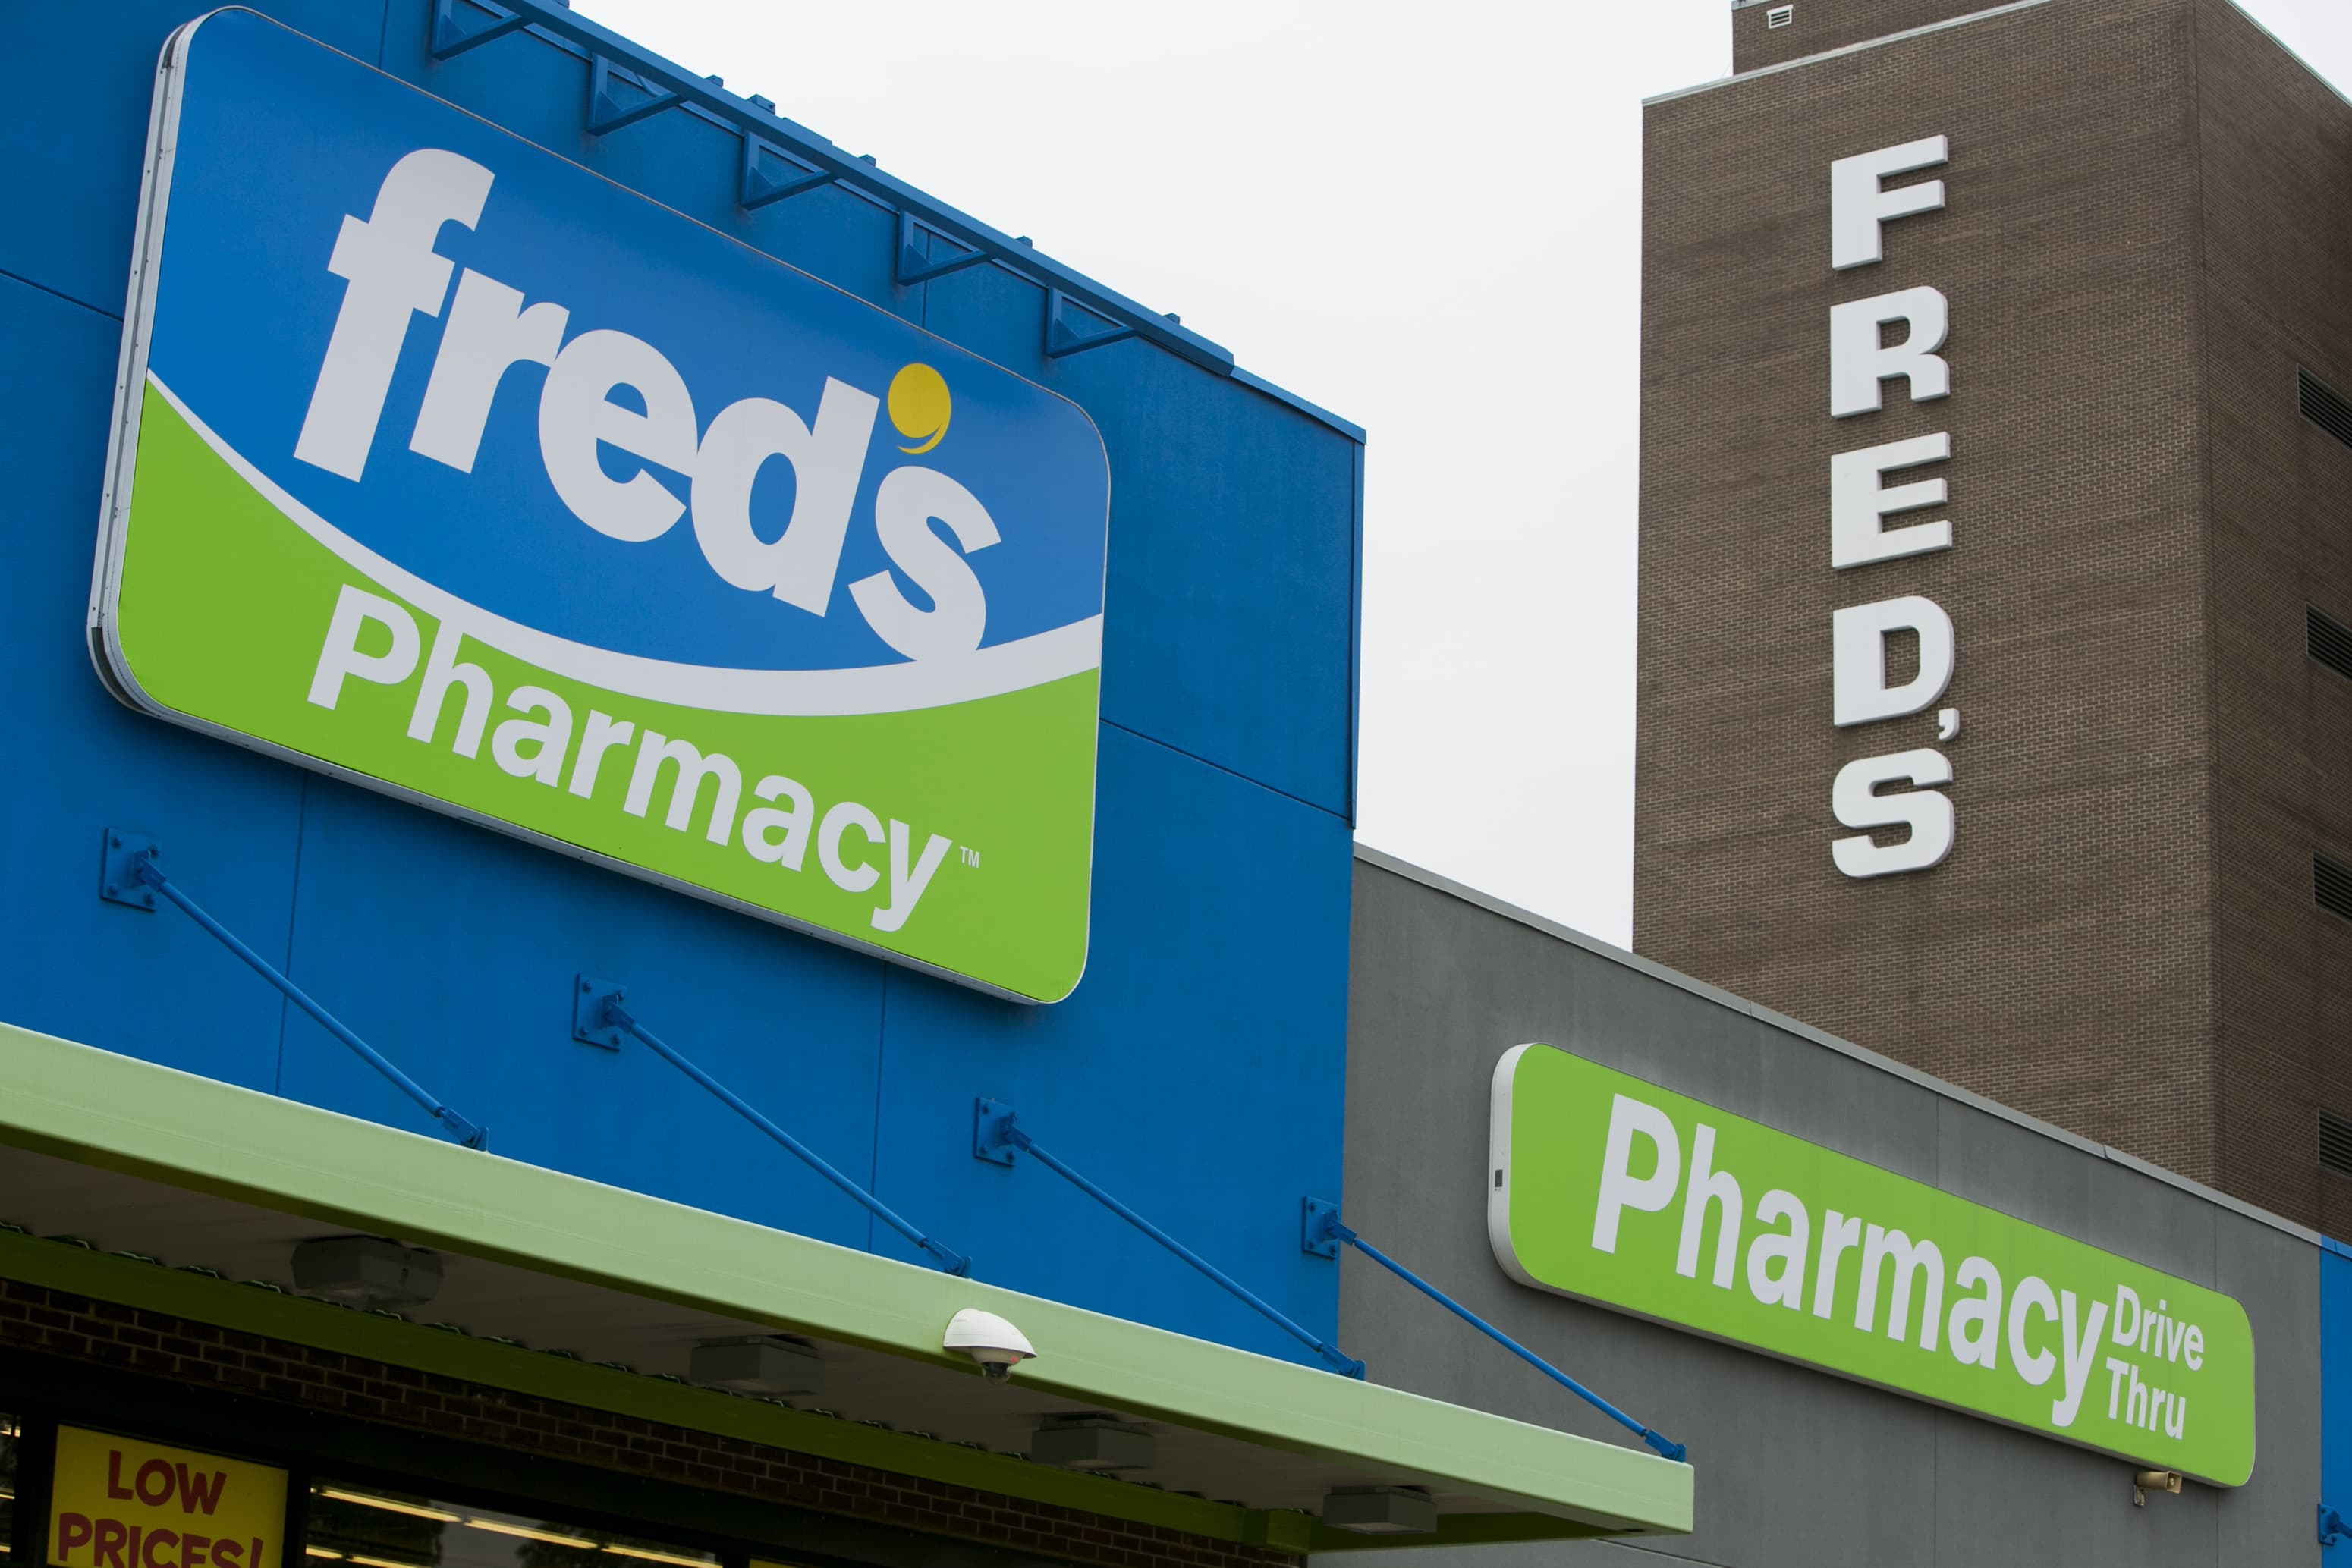 Freds Shares Surge On Deal To Sell Some Pharmacy Files To Walgreens